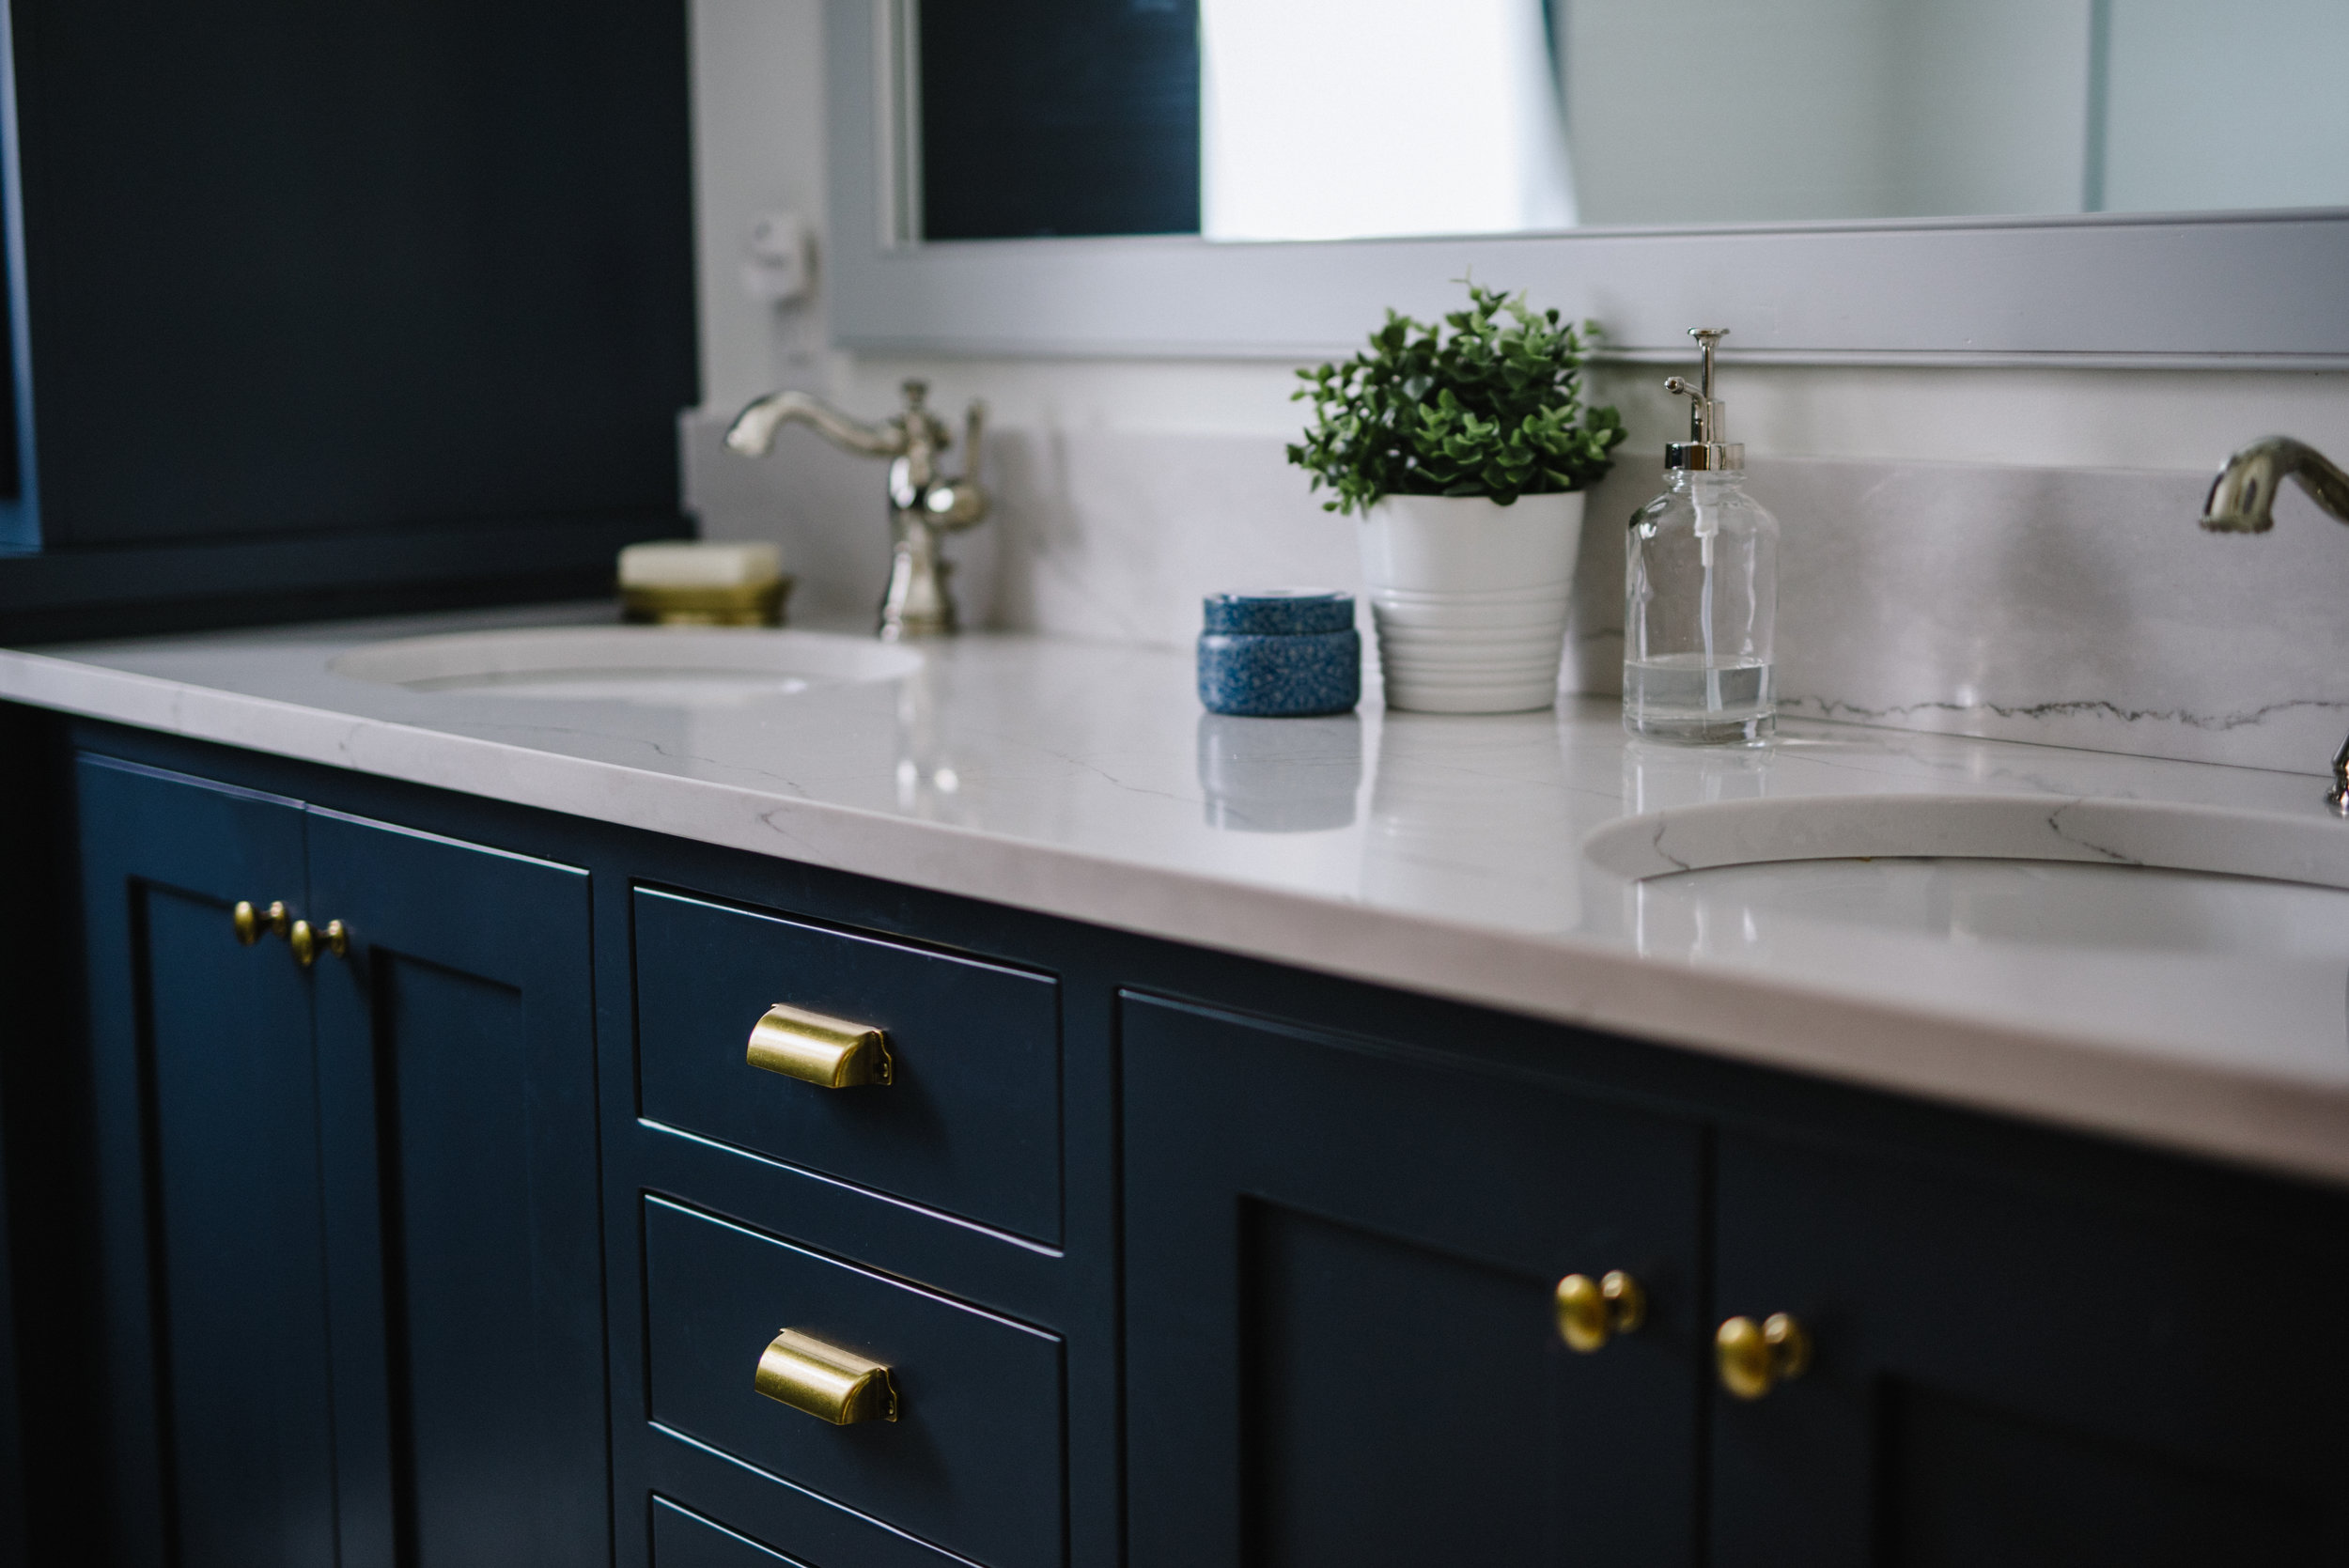 Inky blue cabinets with  Ella cambria quartz counters ,  Delta cassidy faucets in Brilliance Polished Nicke l,  hardware by Martha stewart at home depot.  custom cabinets & Mirror by brian stoll, jonesville, MI. Photos by Rachel Cuthbert Photography.